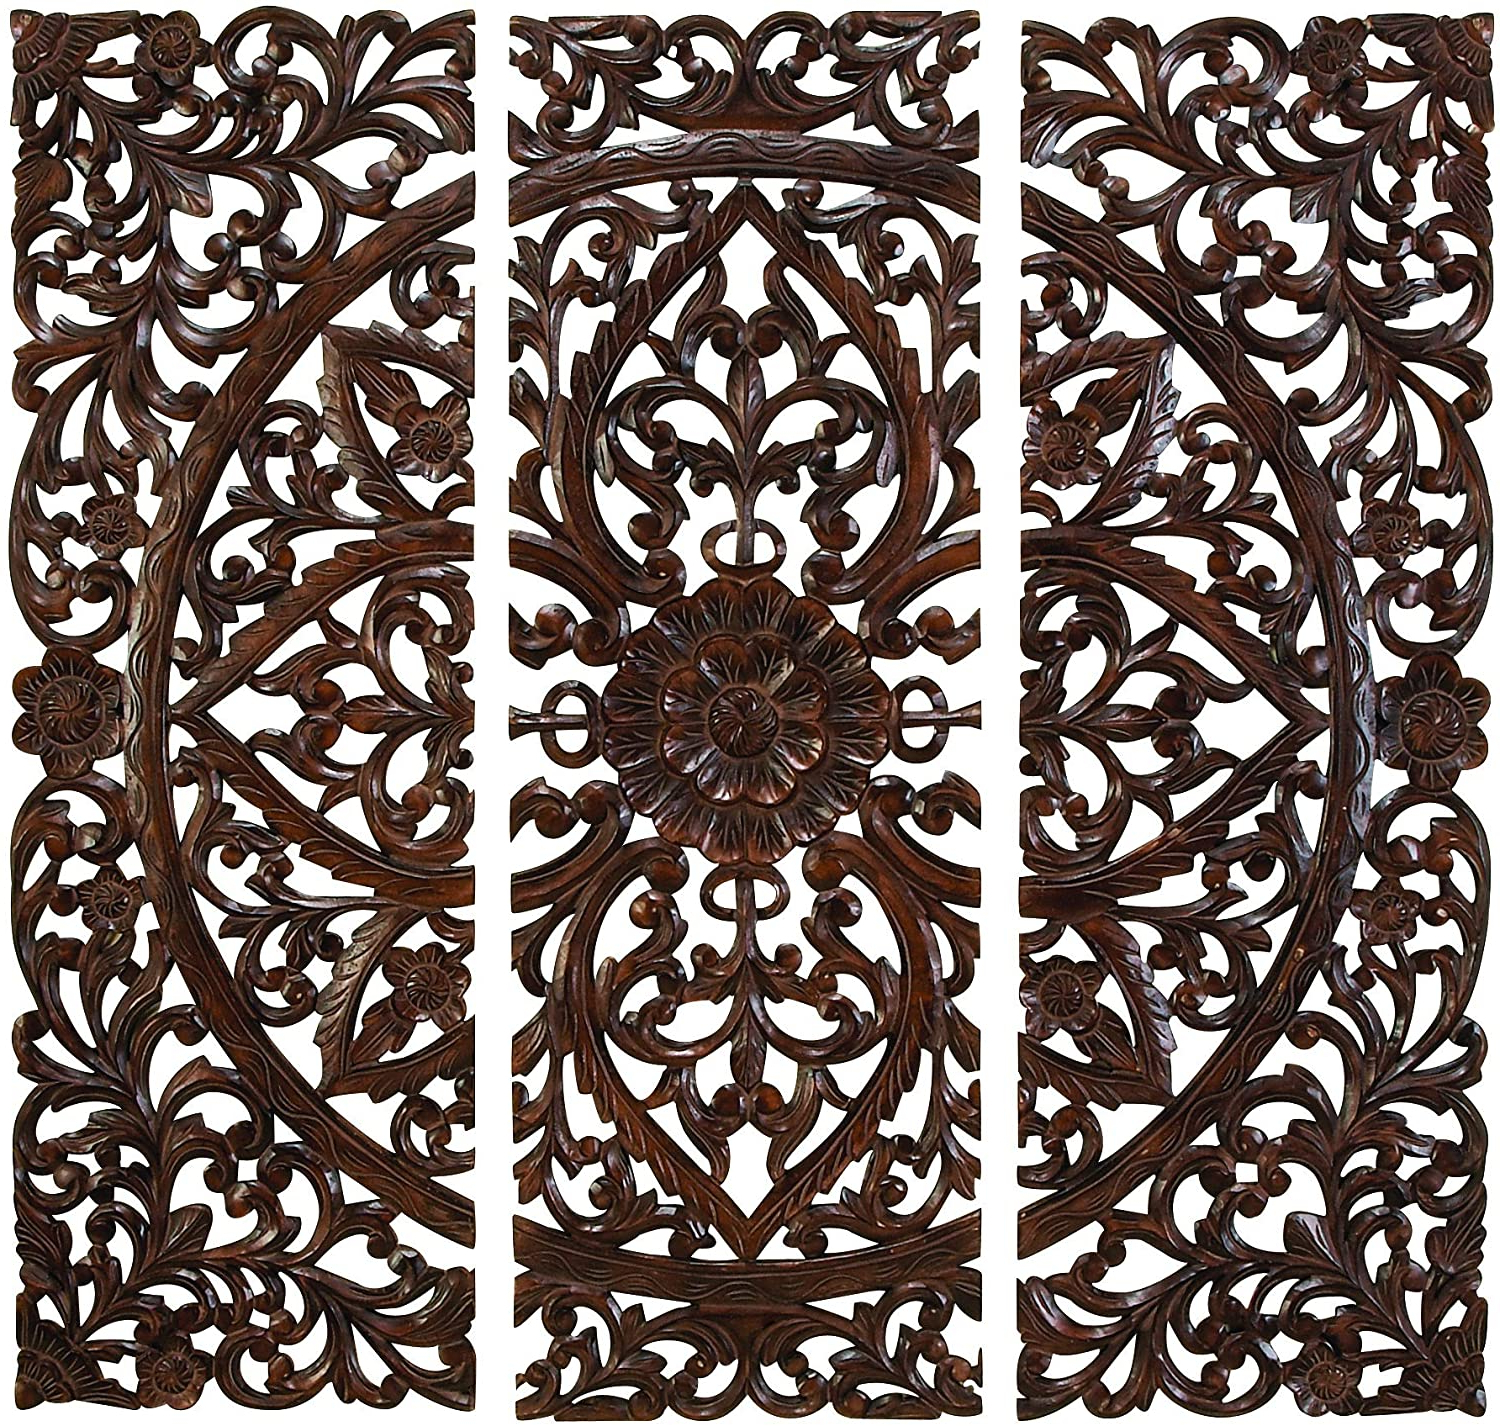 """3 Piece Carved Ornate Wall Décor Set Regarding Preferred Deco 79 14255 Large Hand Carved Wood Wall Panels With Floral & Acanthus Designs, 24"""" X 71"""" (View 2 of 20)"""